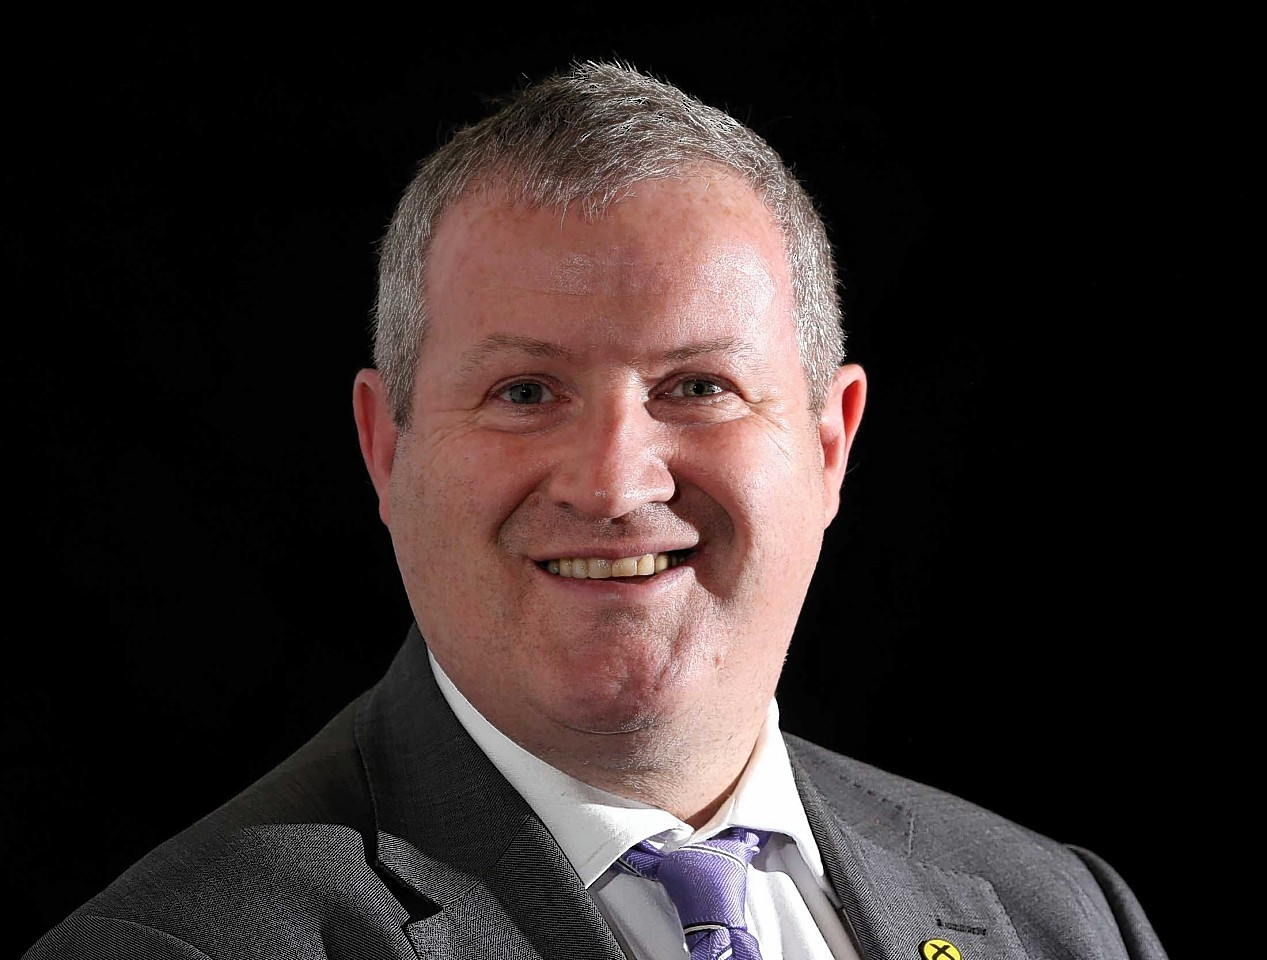 SNP MP Ian Blackford.